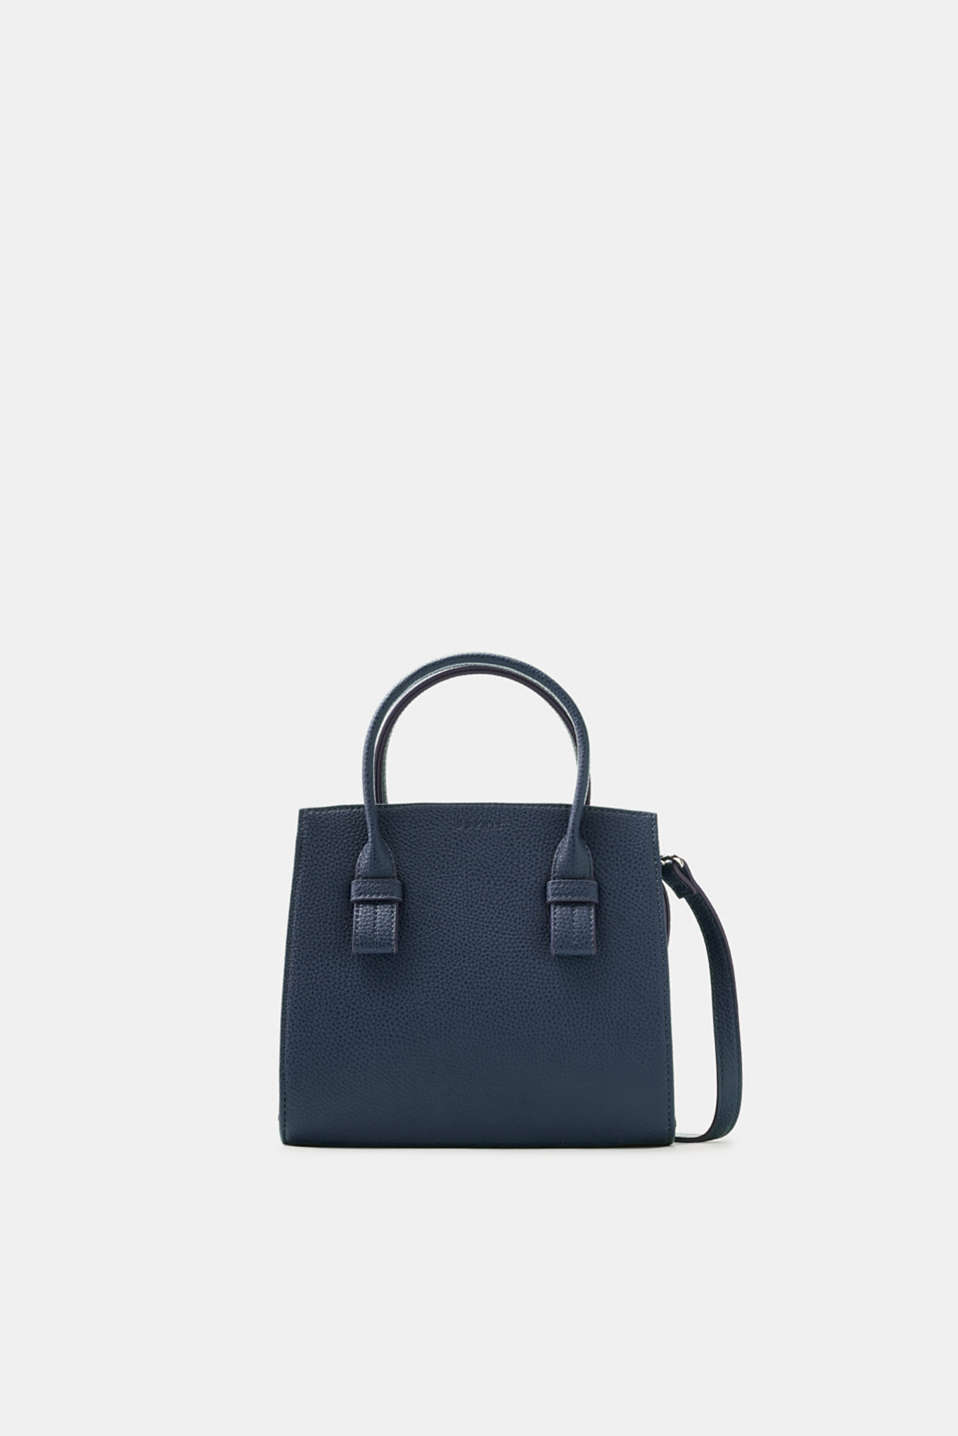 Esprit - City Bag in fein genarbter Leder-Optik